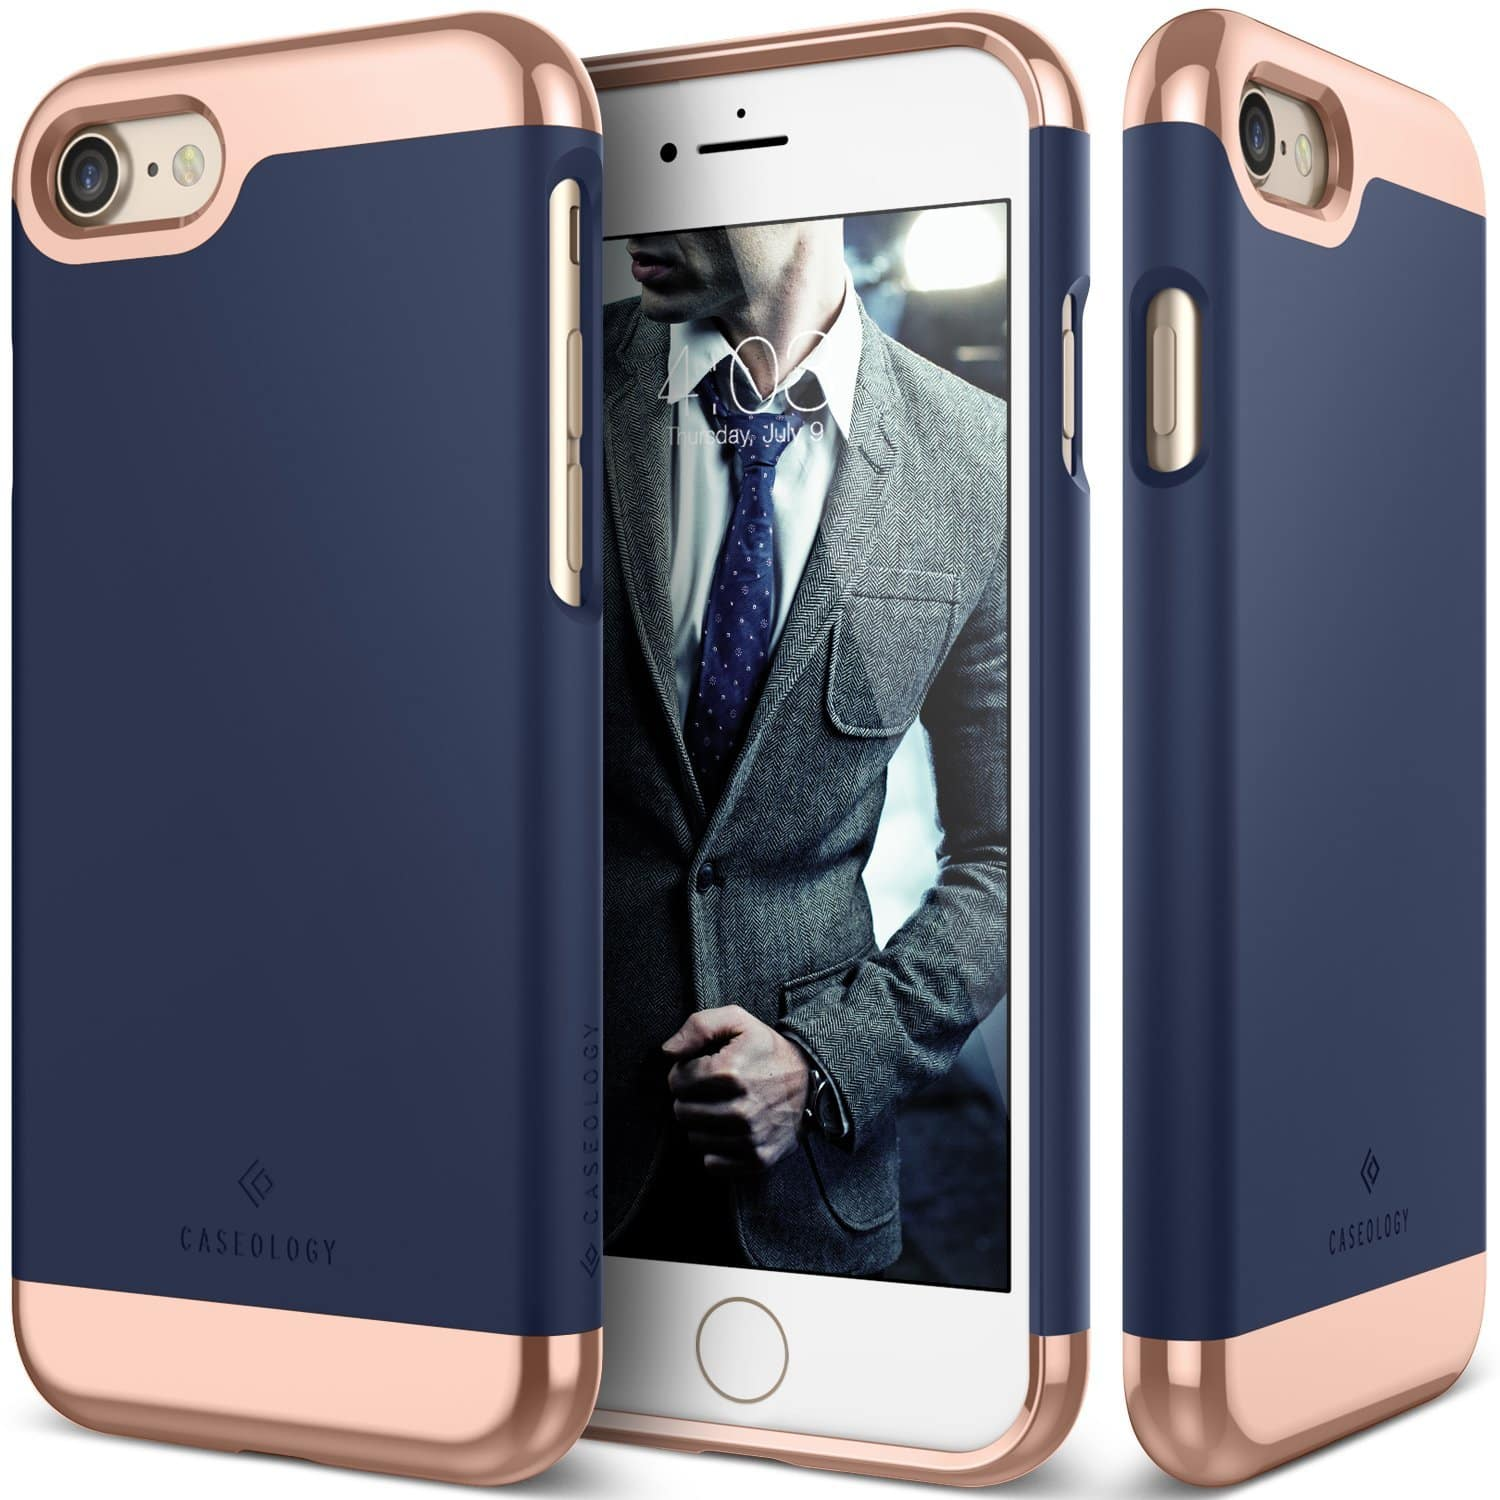 Caseology Cases for iPhone 7 and iPhone 7 Plus  $4.50 + Free Shipping